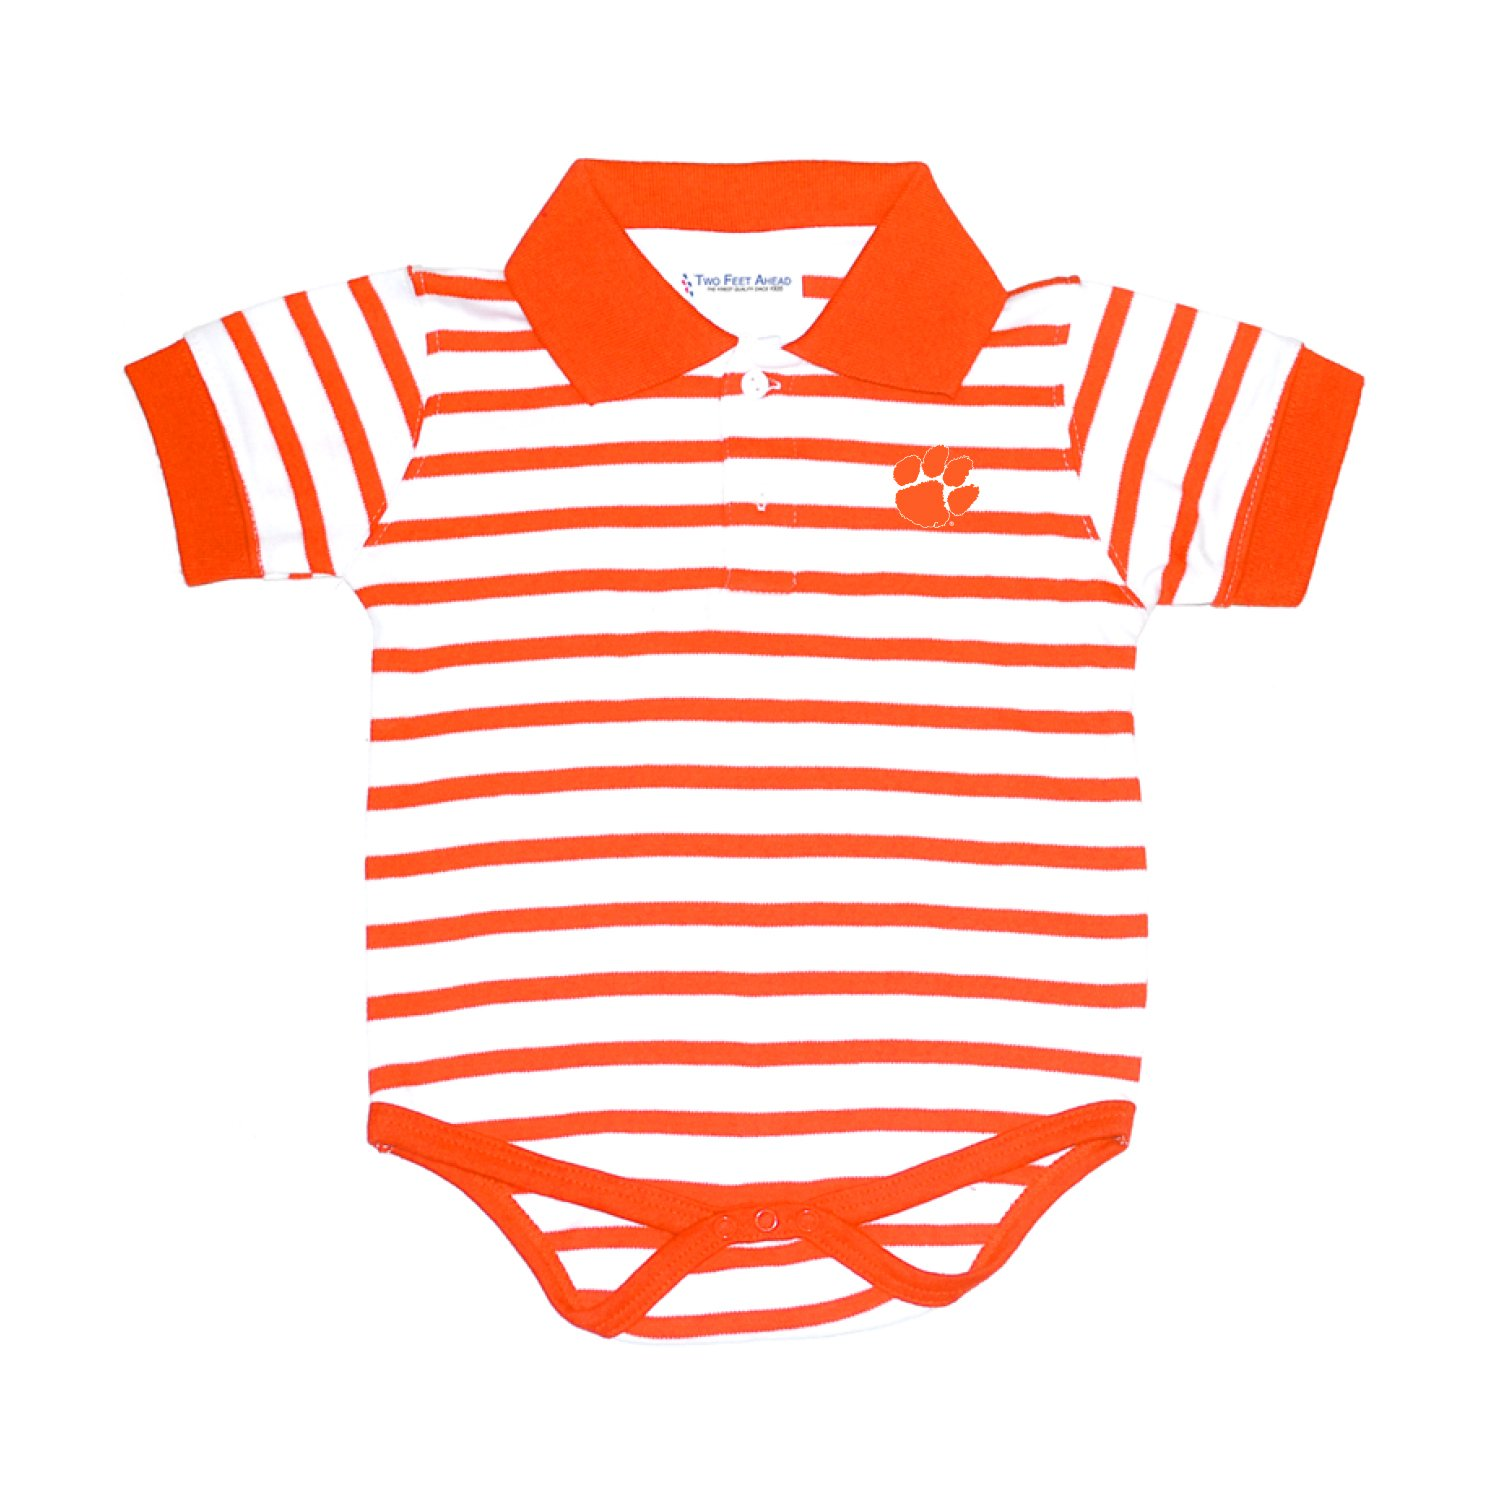 Two Feet Ahead Clemson Tigers Orange Striped NCAA College Newborn Infant Baby Creeper